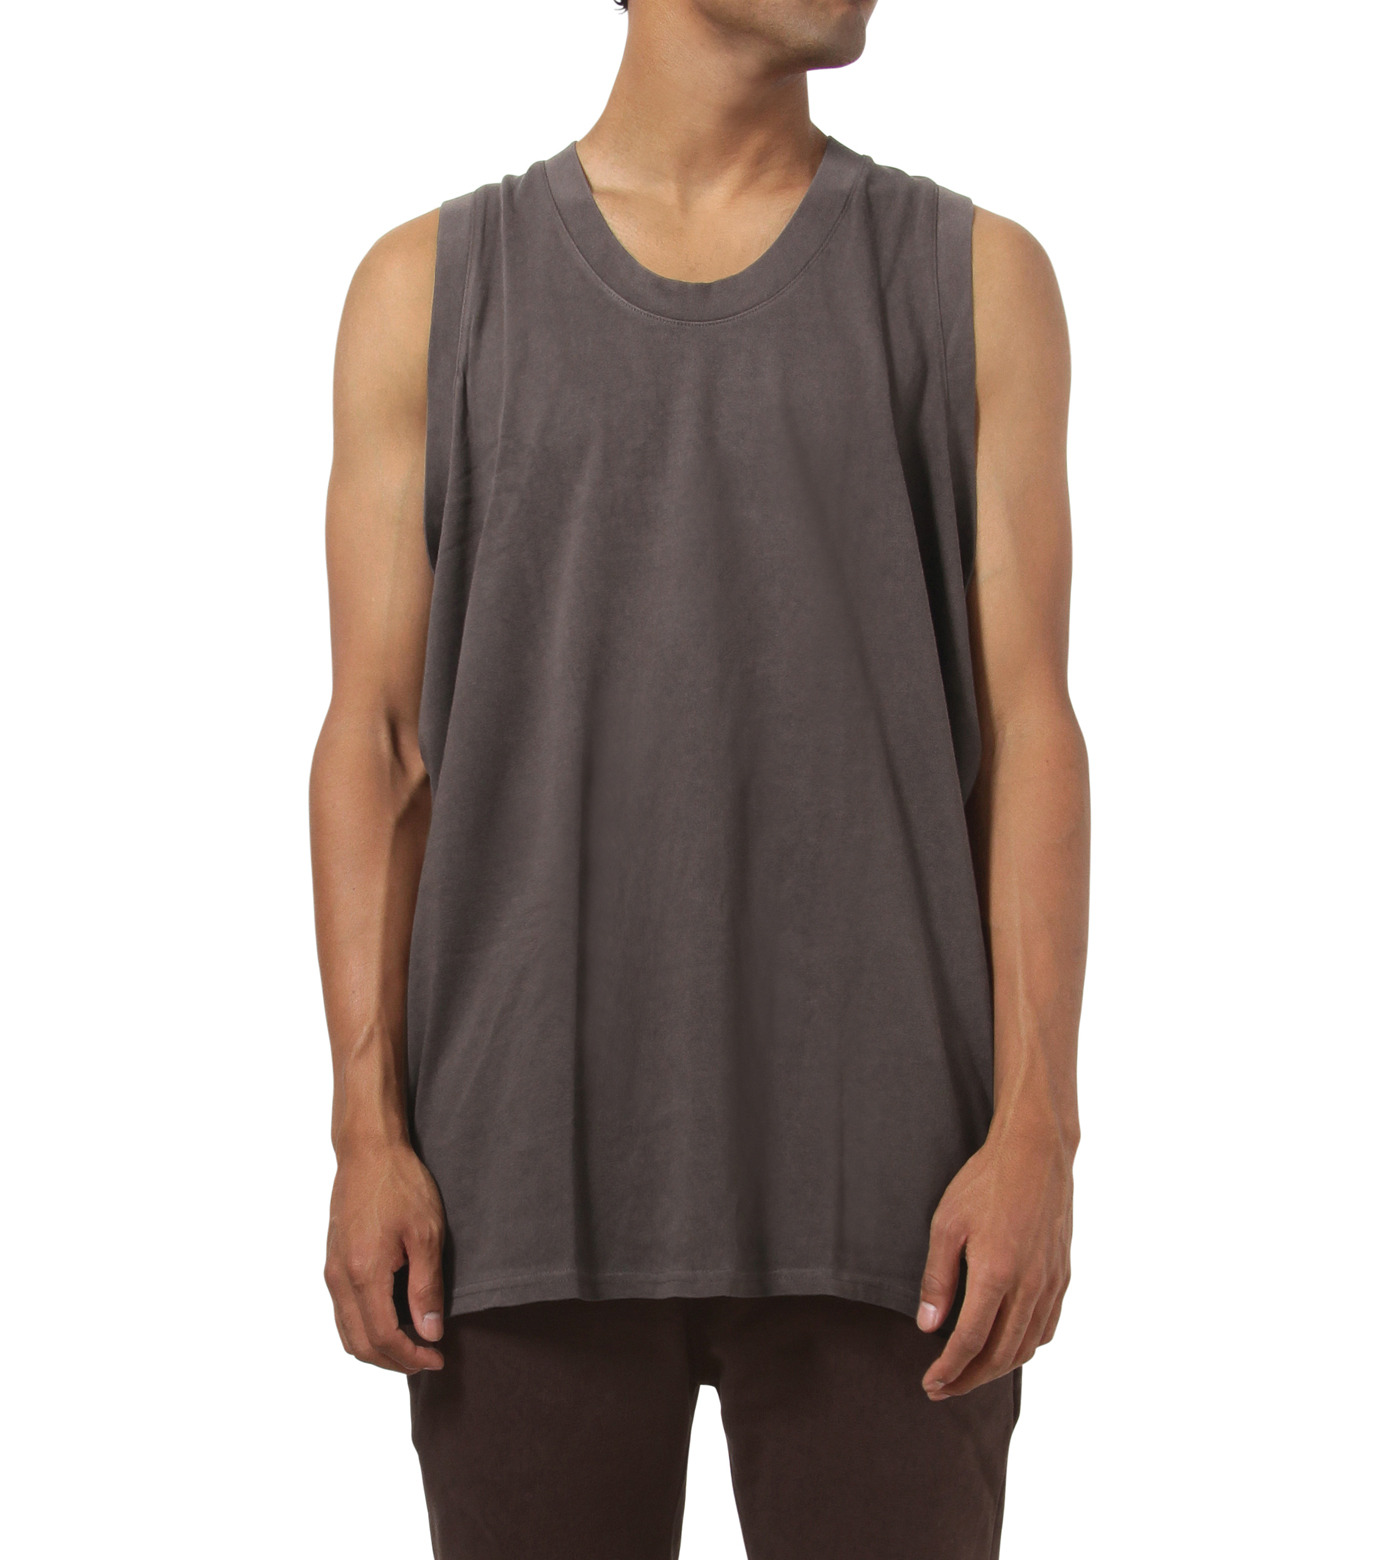 YEEZY adidas(YEEZY adidas)のJersey Tank-BROWN(カットソー/cut and sewn)-AO2609-42 拡大詳細画像1